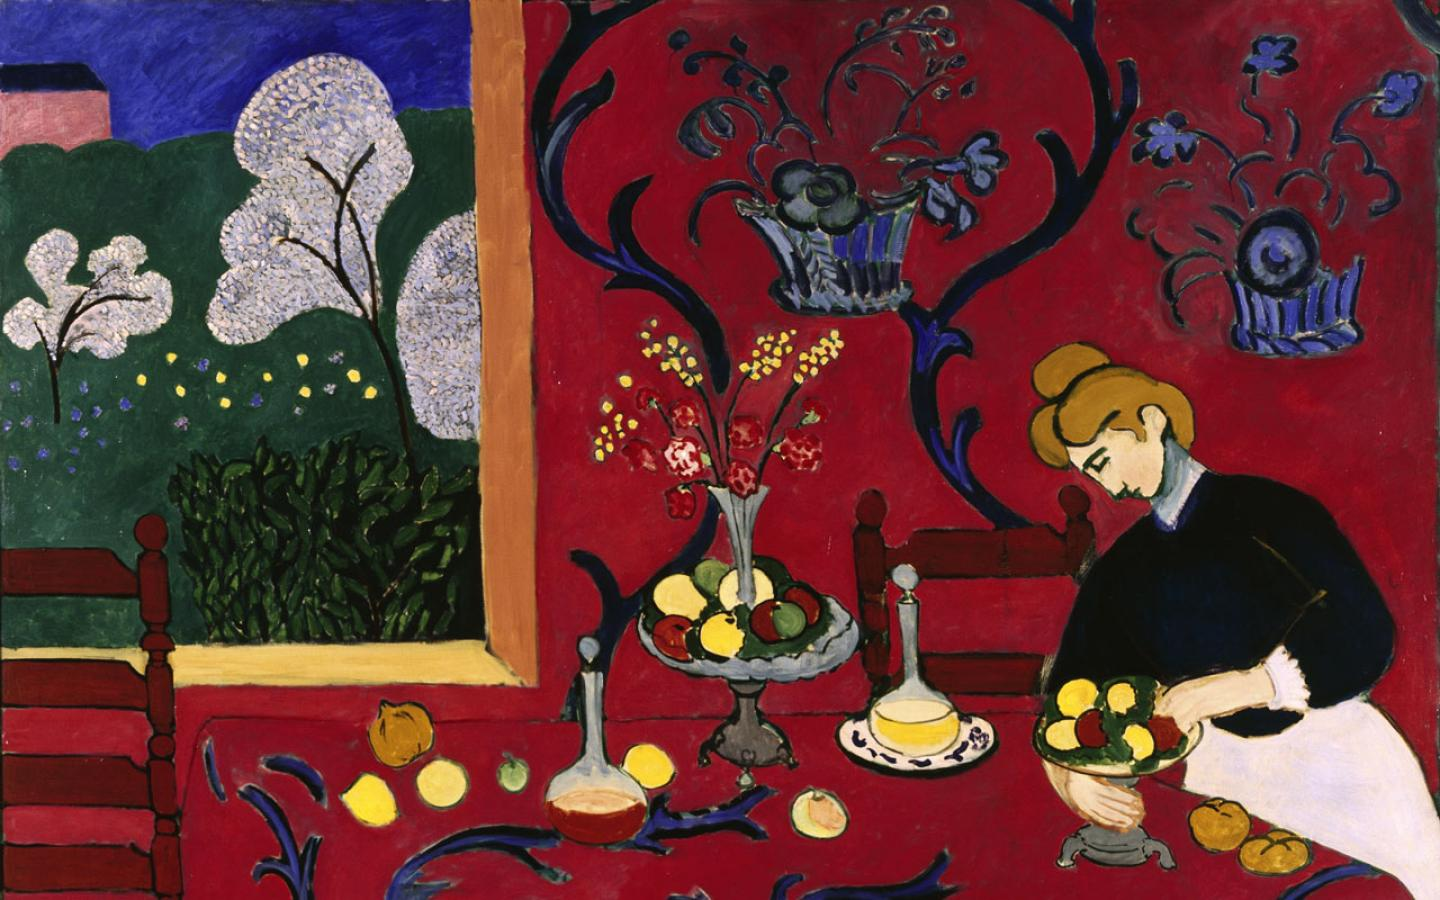 Henri Matisse - The Red Room Wallpaper #1 1440 x 900